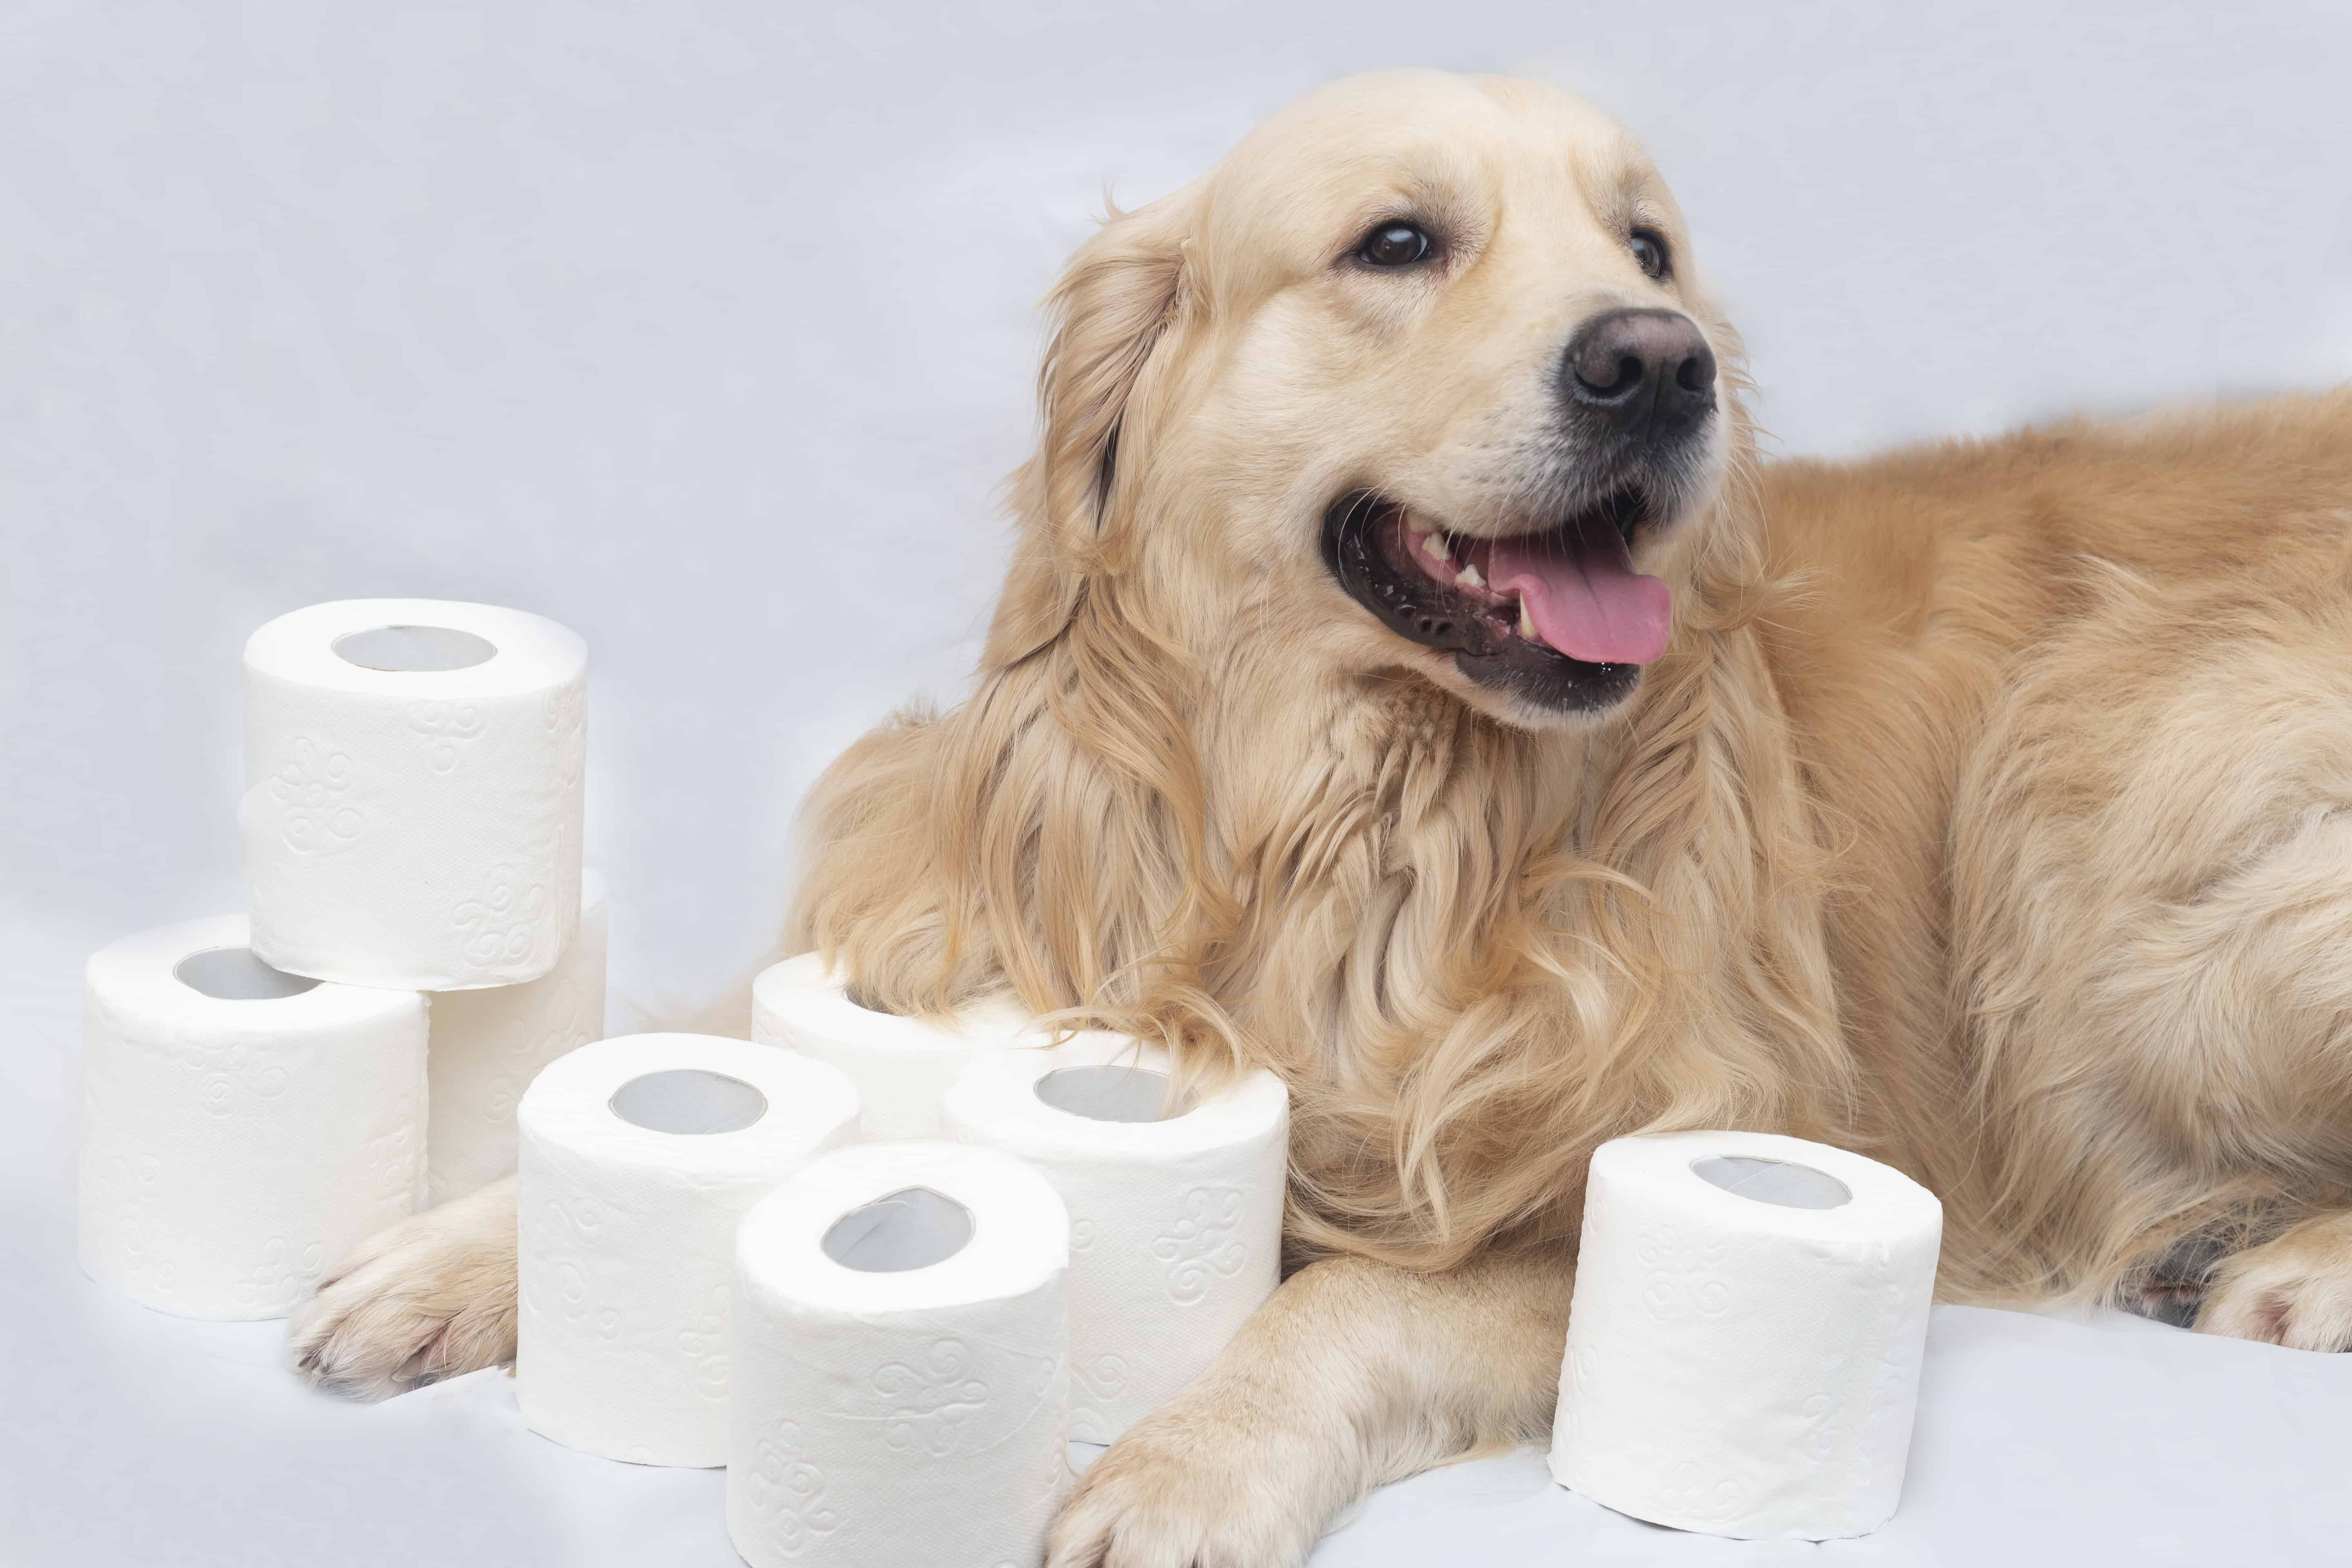 White toilet paper on white background with dog.